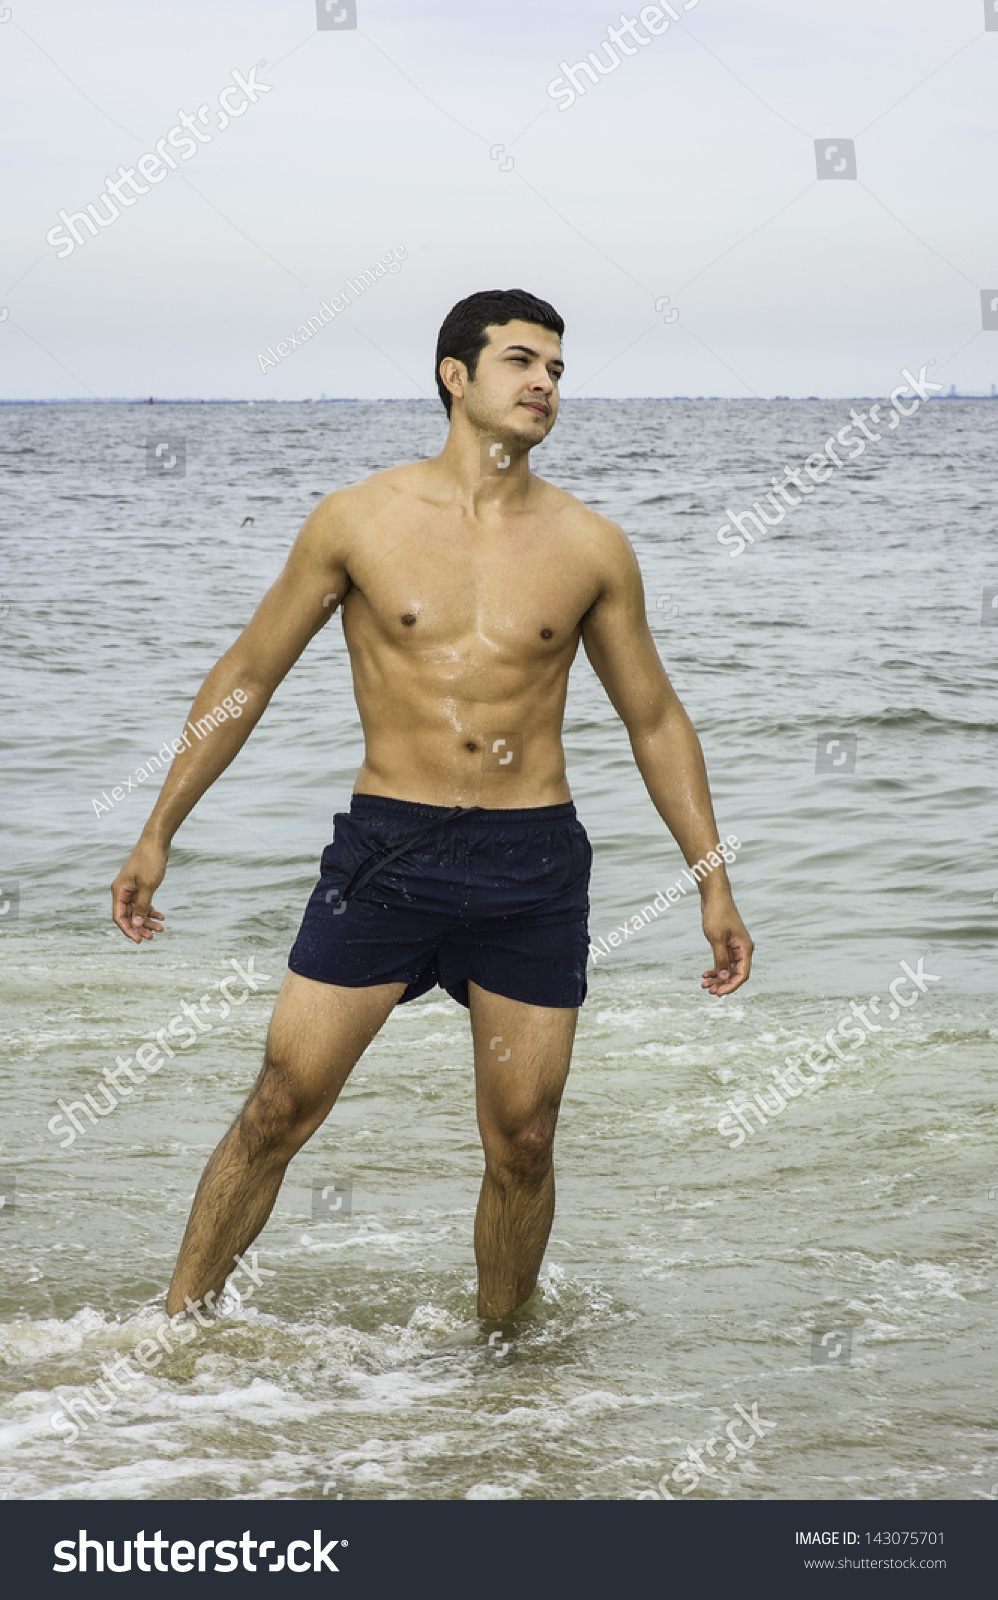 Naked guys on the beach images 21